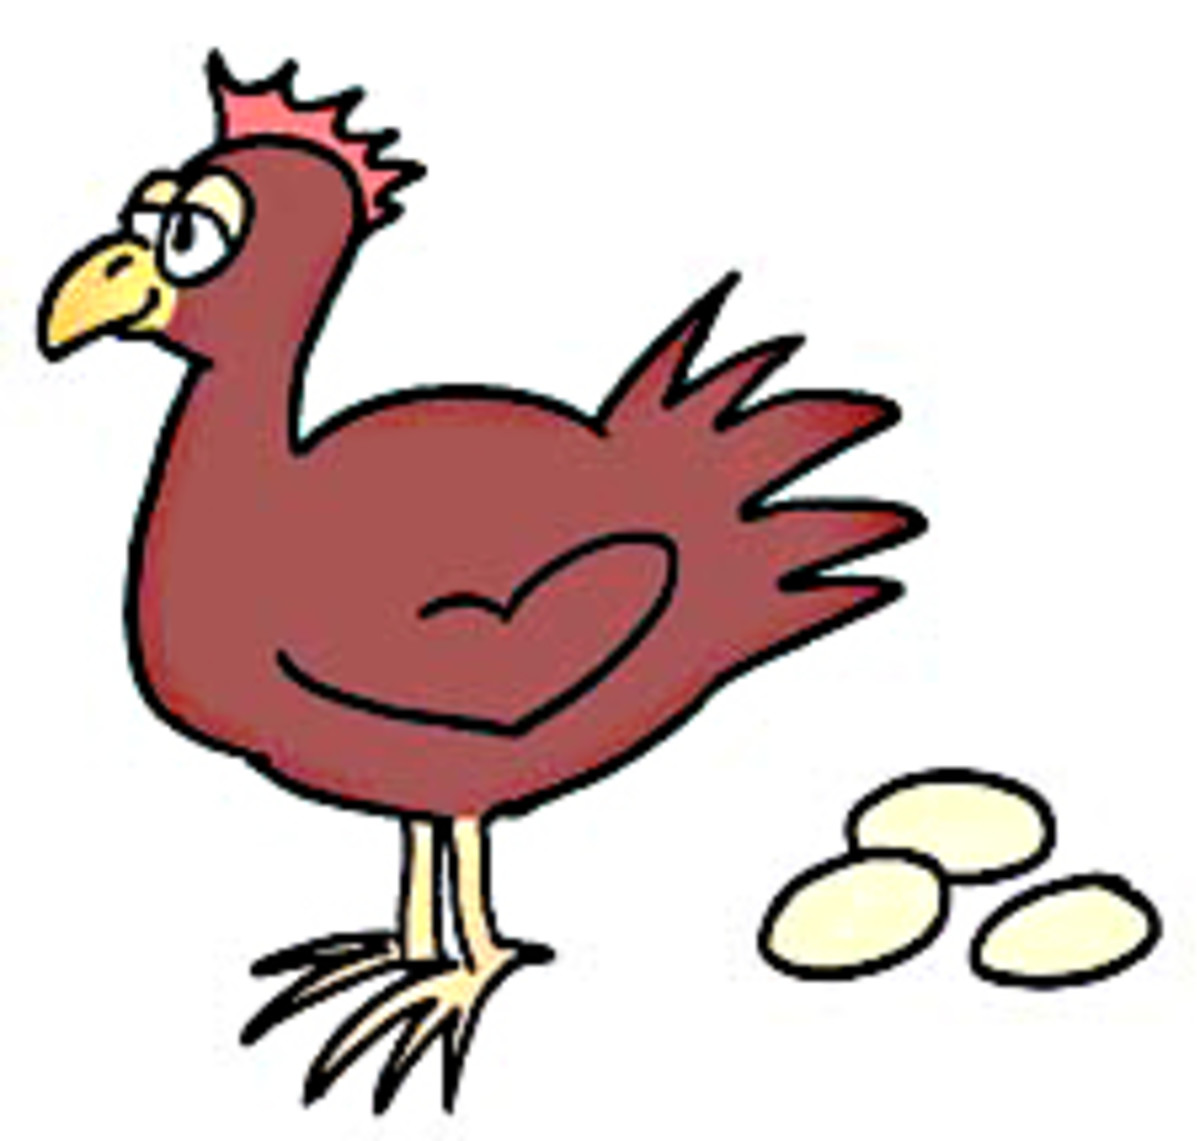 The Chicken and the Egg - Which came First? An Accurate, but Not Very Serious Analysis